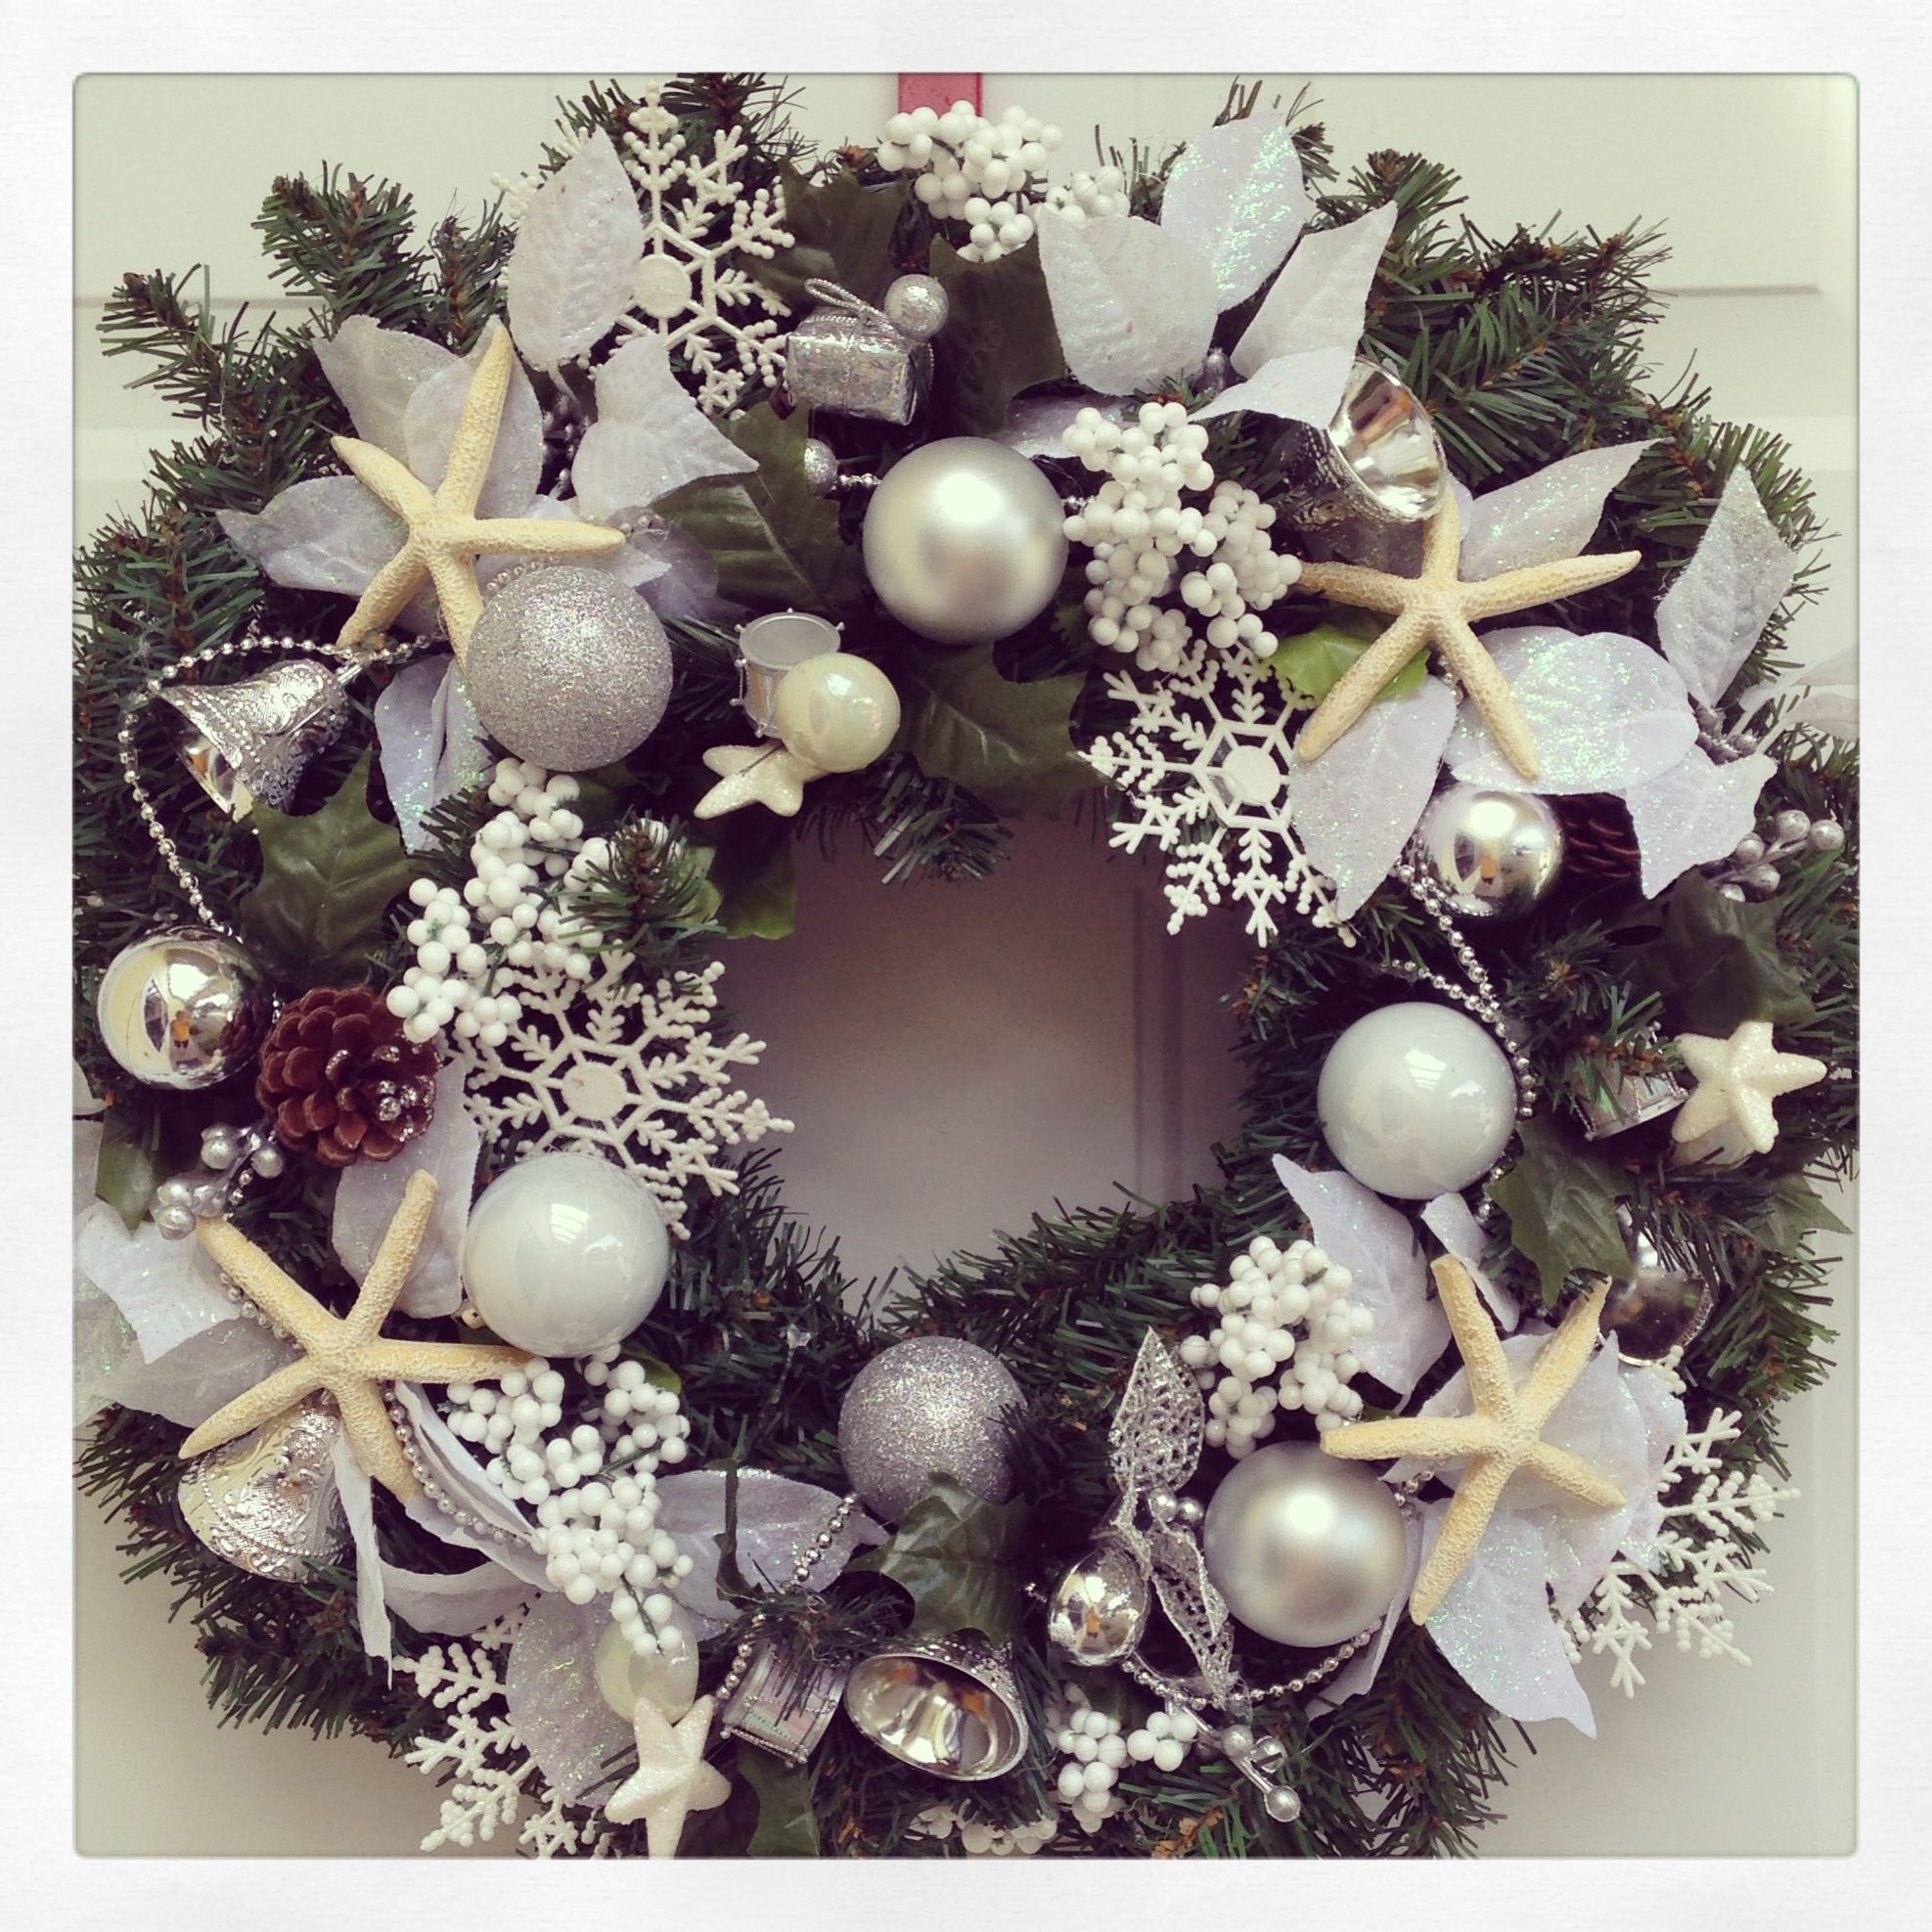 Whipped this up this morning using a plain $2 thrift store #wreath and #DollarTree picks. Resin #starfish were purchased this summer at #ChristmasTreeShoppe in NY. coastalChristmas #lovefl